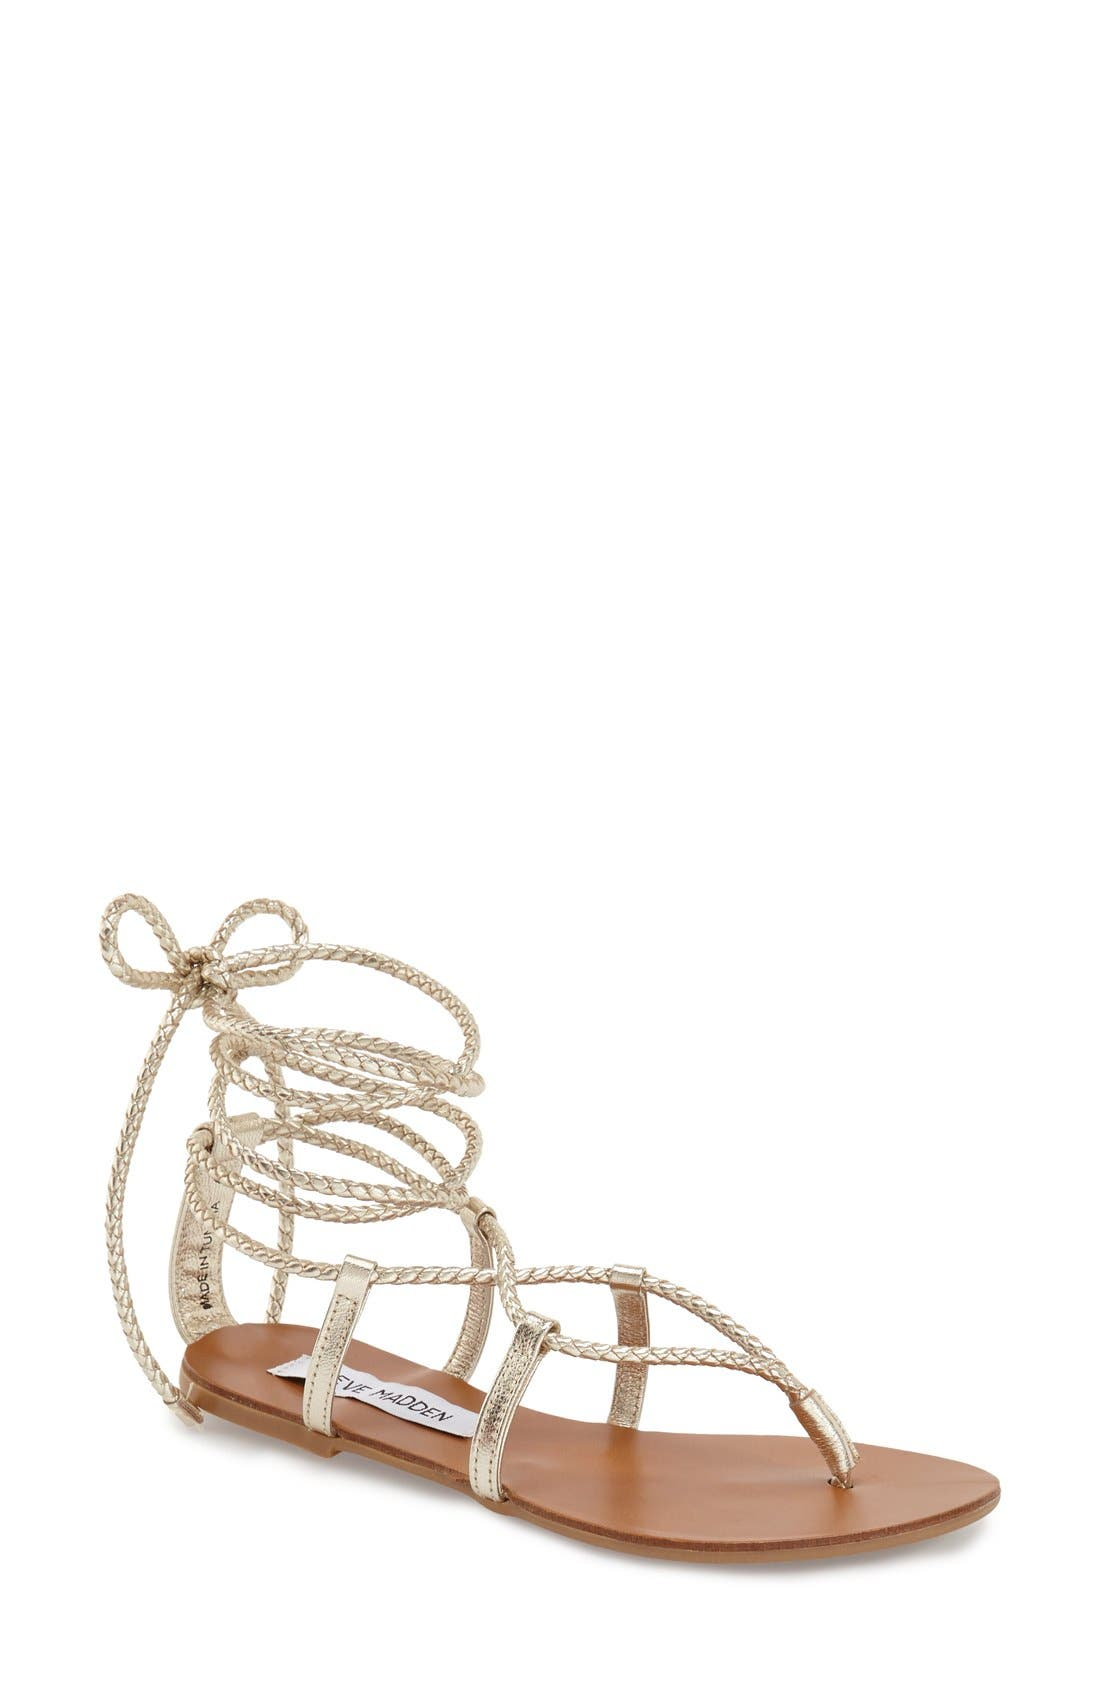 'Werkit' Gladiator Sandal,                         Main,                         color, Gold Multi